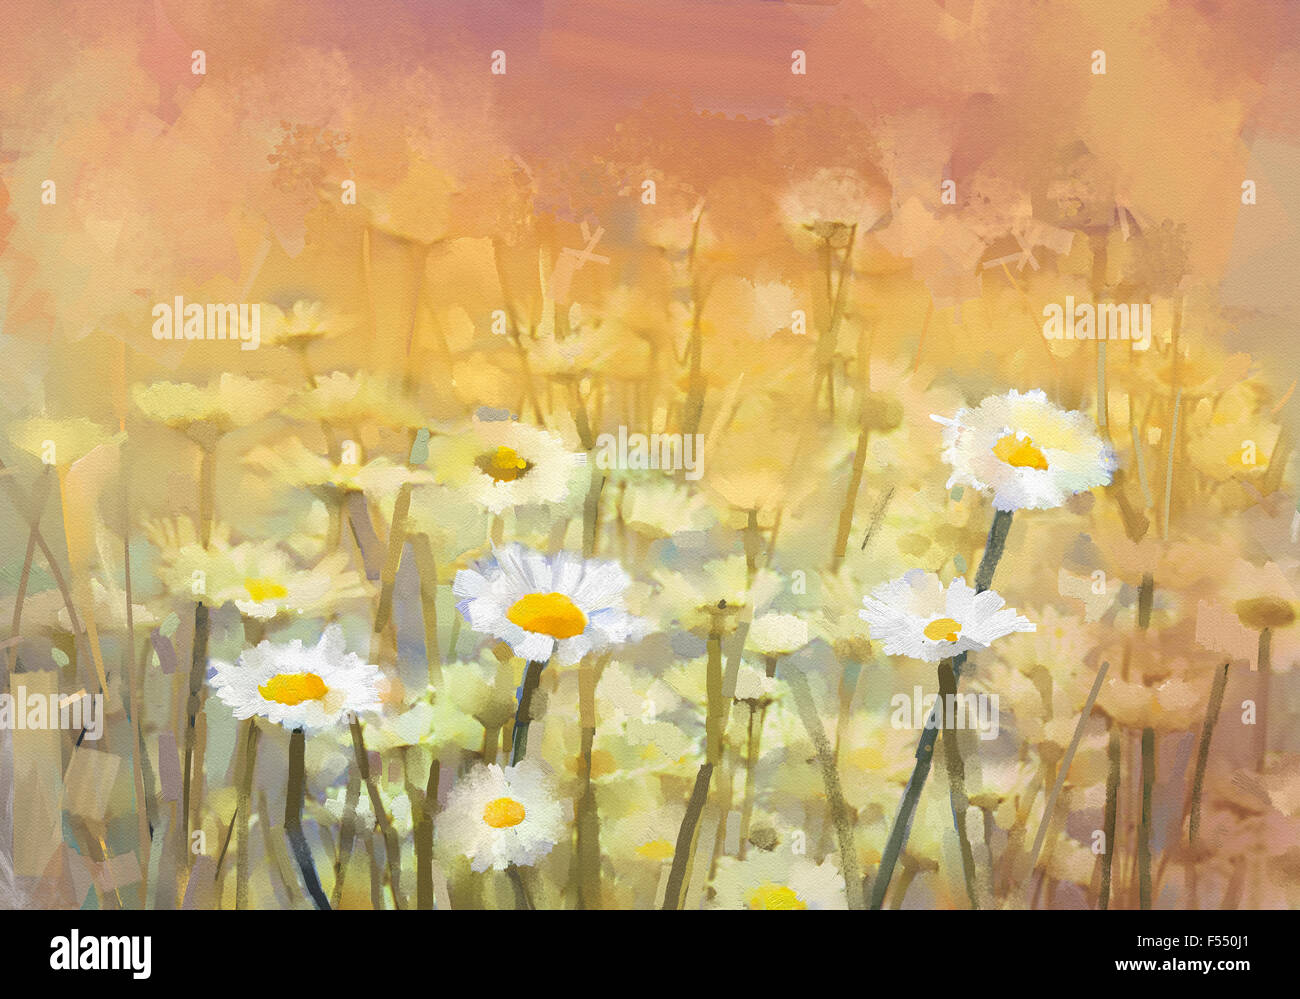 Oil Painting Daisy Chamomile Flowers Field At Sunrise Vintage Stock